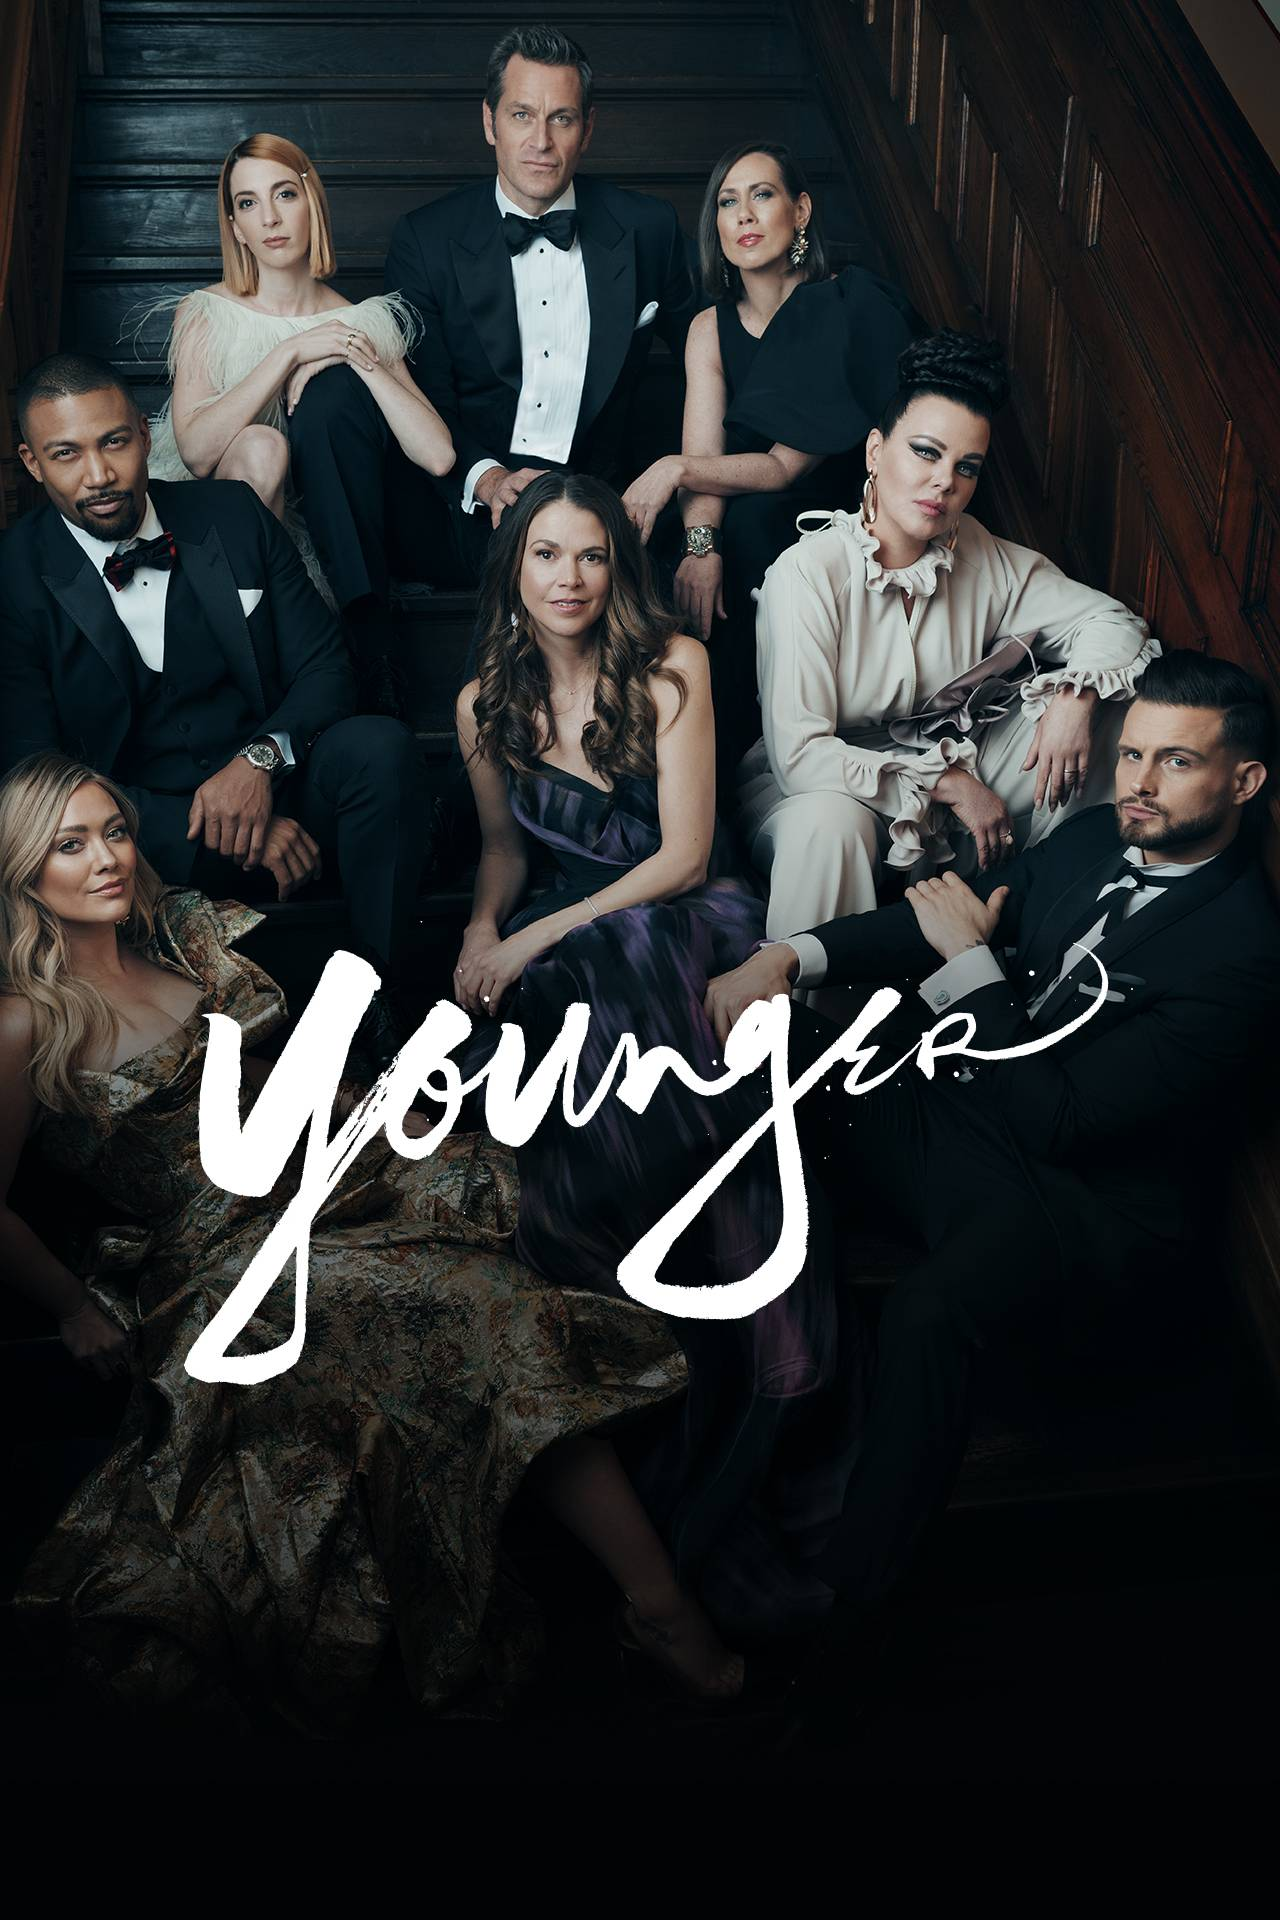 Younger - Season 6 - TV Series | TV Land